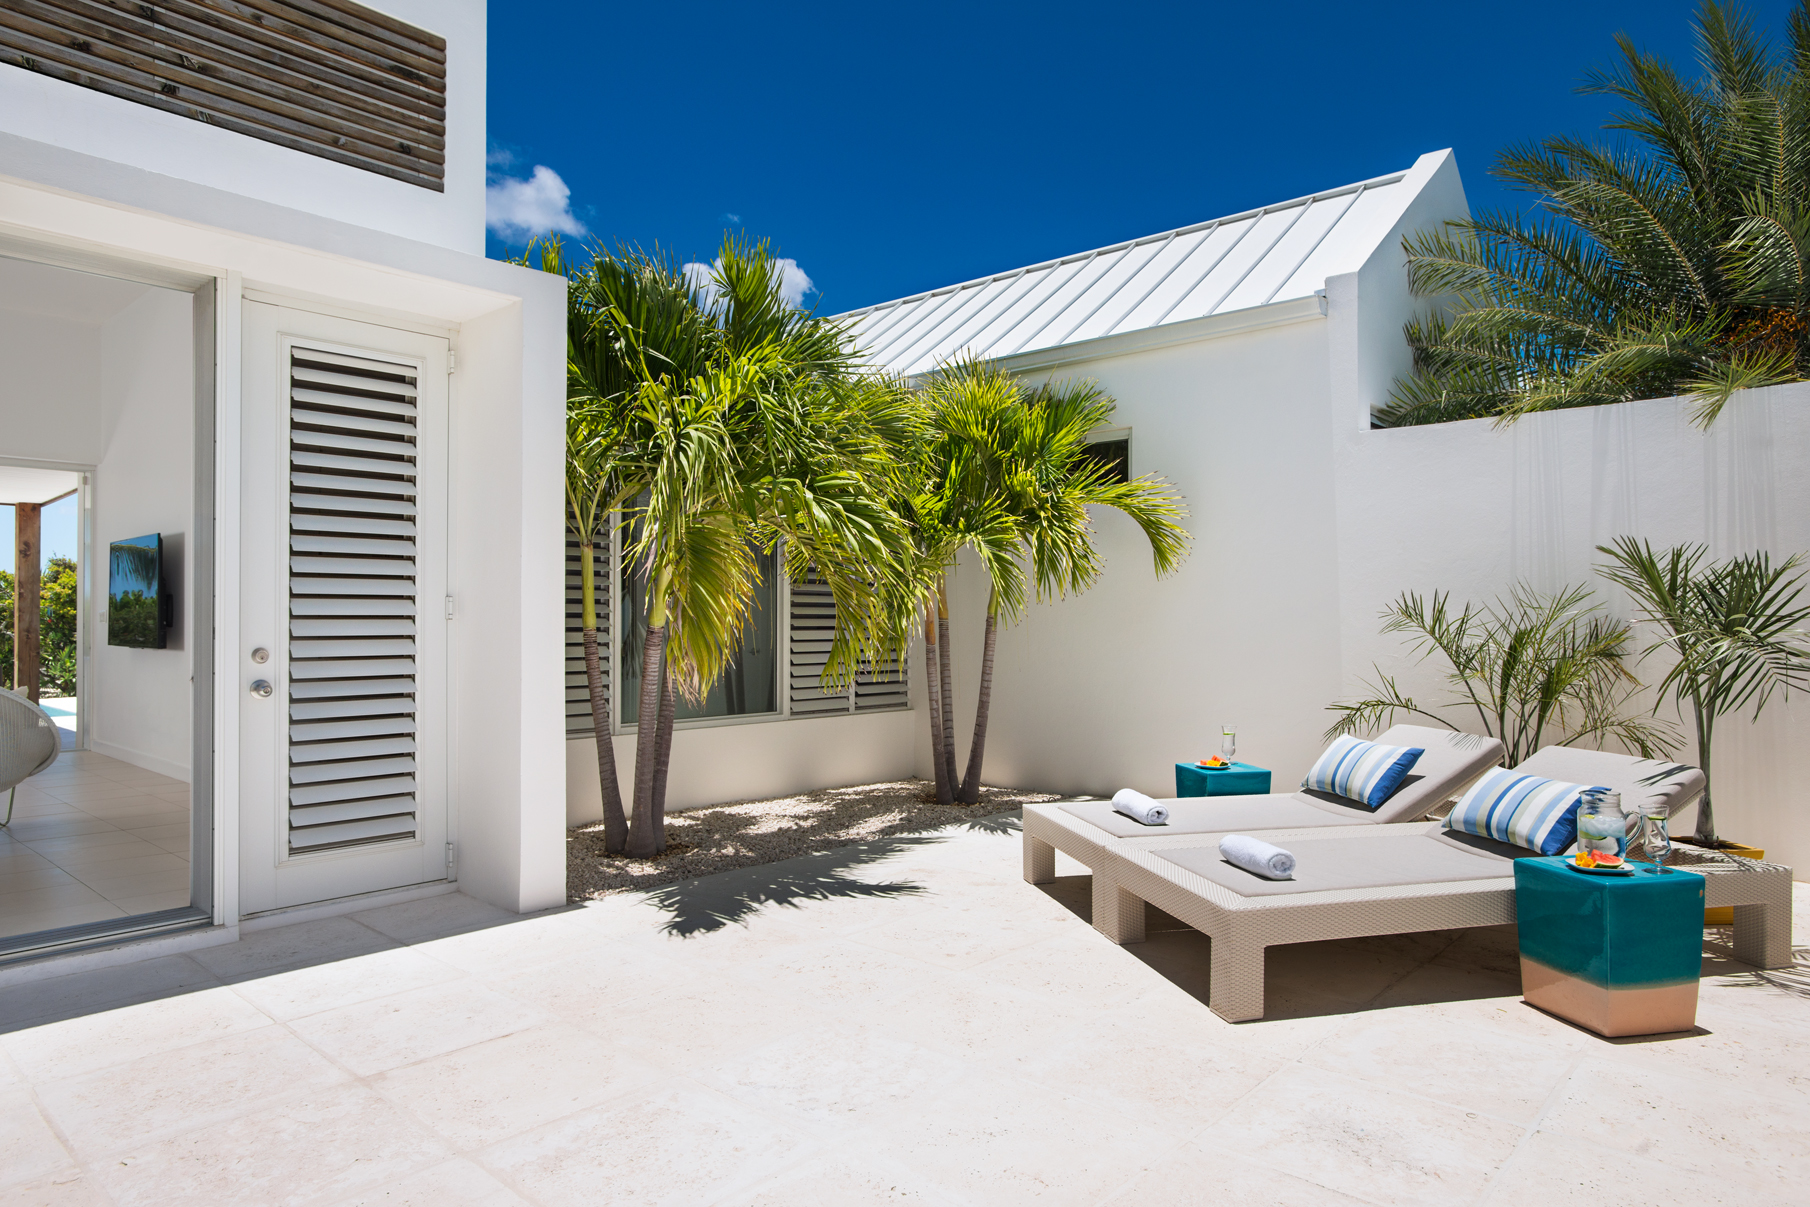 Additional photo for property listing at Sunset Beach Villas - Design B Gardenview Leeward, Providenciales TC Turks And Caicos Islands